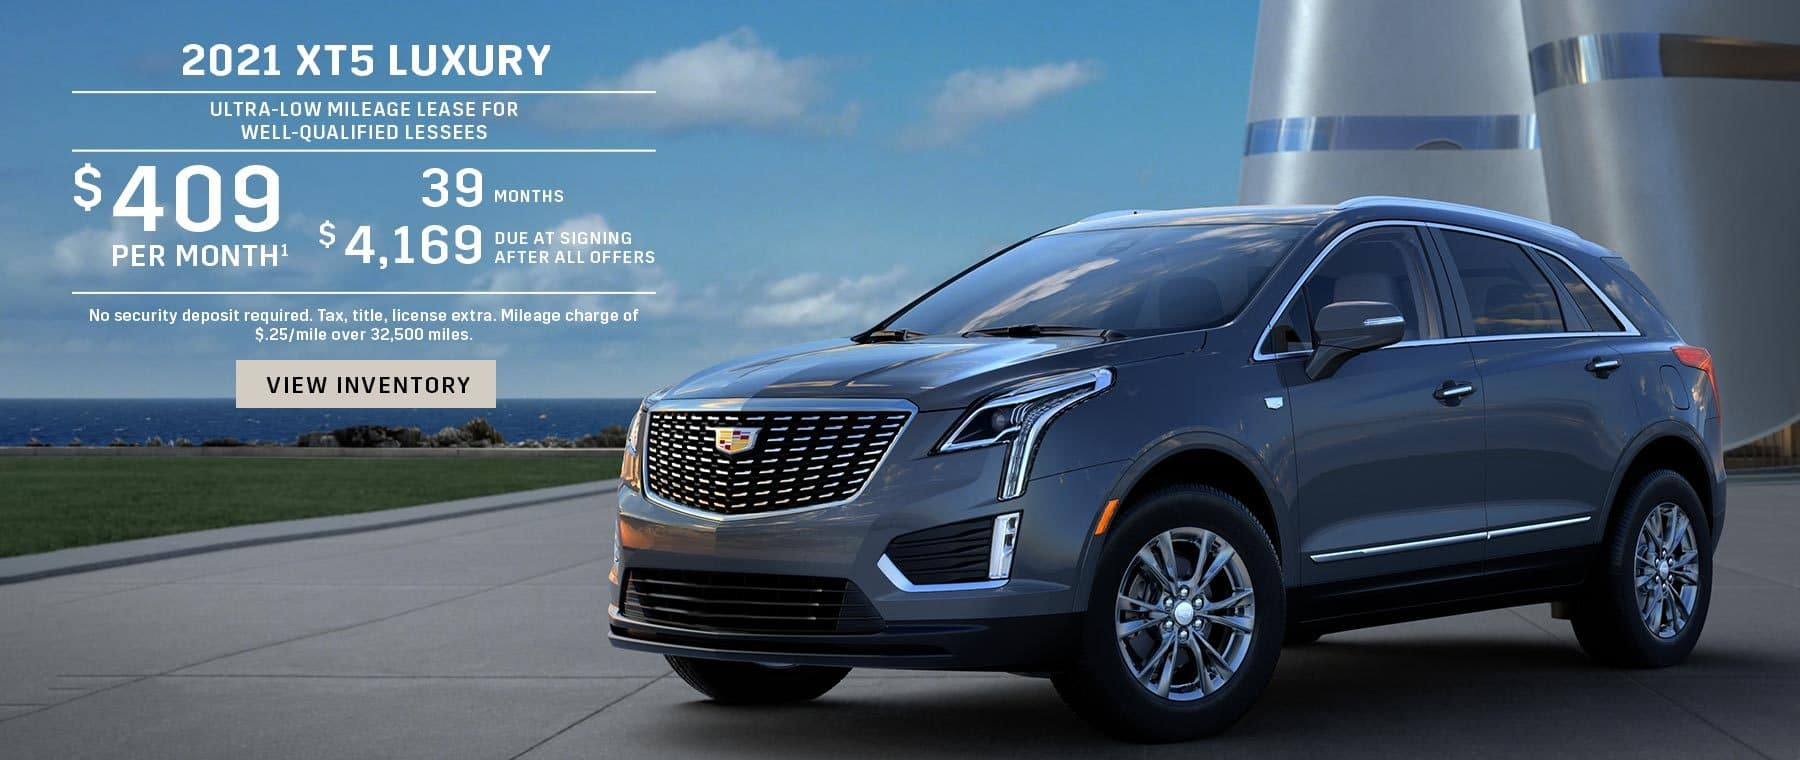 2021 XT5 Luxury. Ultra-low mileage lease for well-qualified lessees. $409 per month 39 months $4,169 due at signing after all offers. No security deposit required. Tax, title, license extra. Mileage charge of $.25/mile over 32,500 miles.